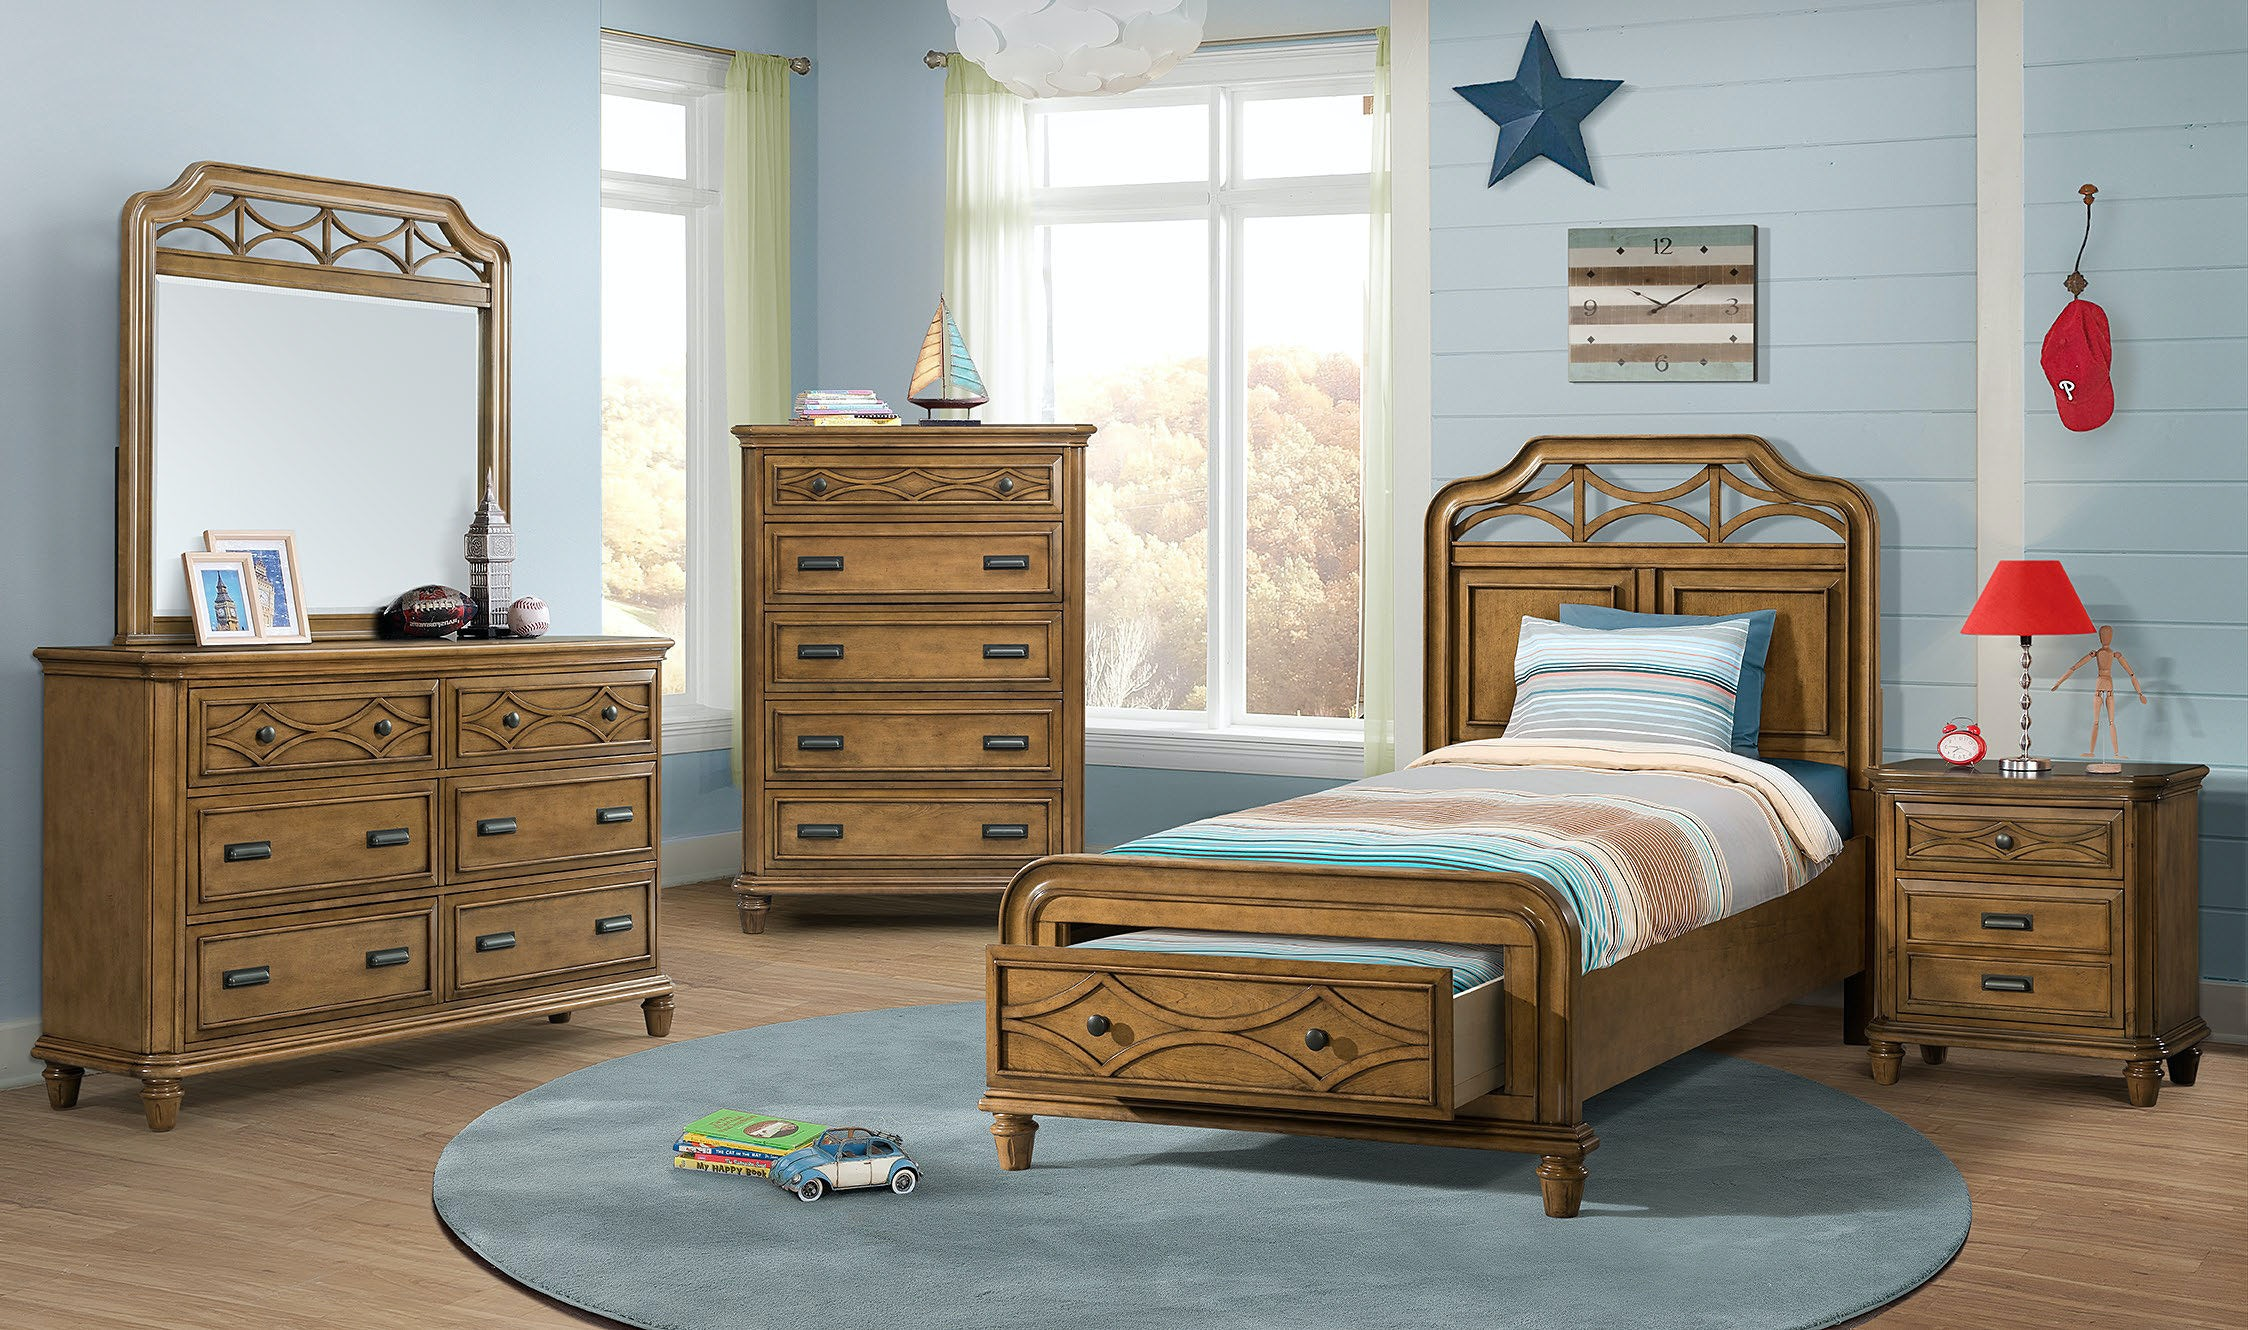 Elements International Mystic Bay Storage Honey Bedroom Including Dresser Mirror Chest Queen Bed u0026 Night Stand & Elements International Mystic Bay Storage Honey Bedroom Including ...